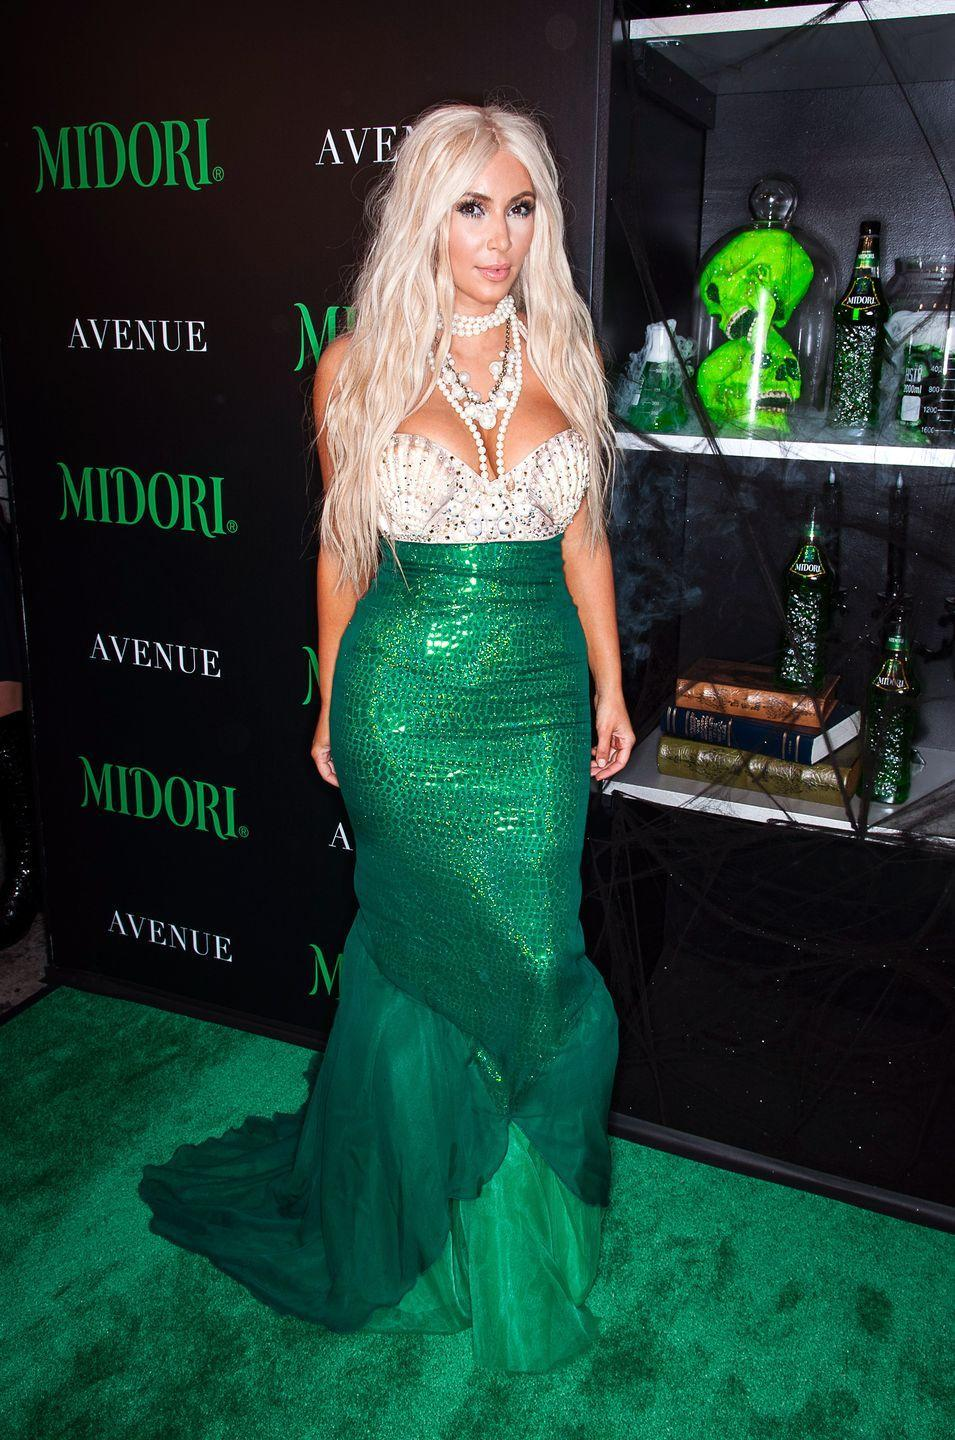 <p>Mermaids have never looked so glam! With a string of pearls, a shell bra, and dramatic green skirt, a blonde Kim shined on the *green* Halloween carpet. </p>